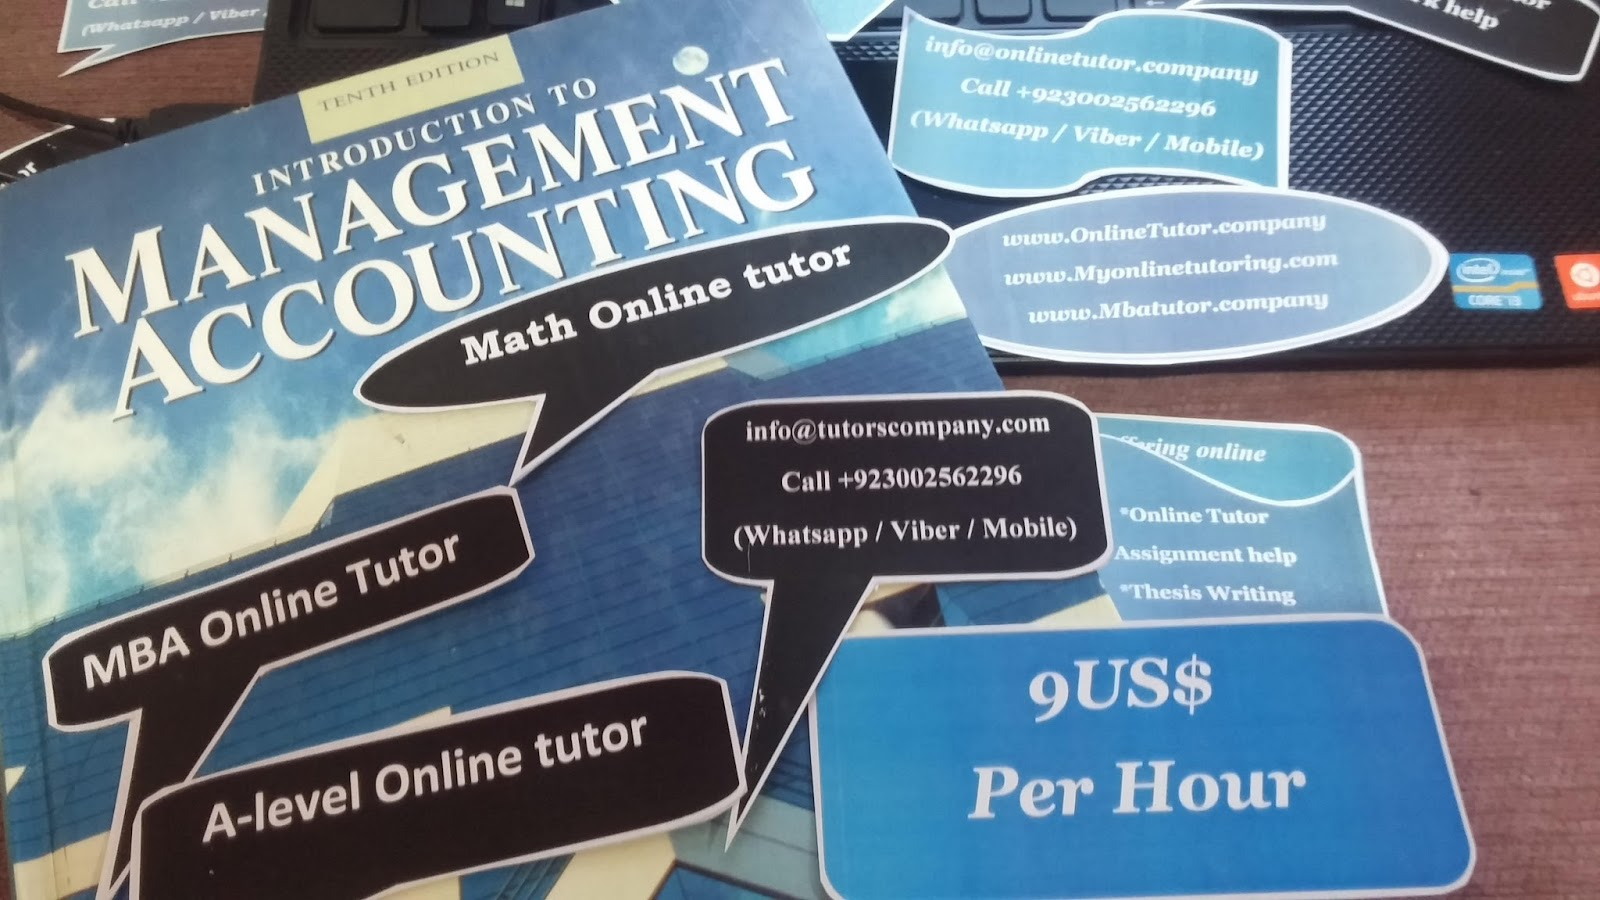 online accounting tutor in usa uk dubai qatar saudi arab we have online tutors basic accounting advance accounting and financial management simply drop us email on info accountingtutor co uk and connect on